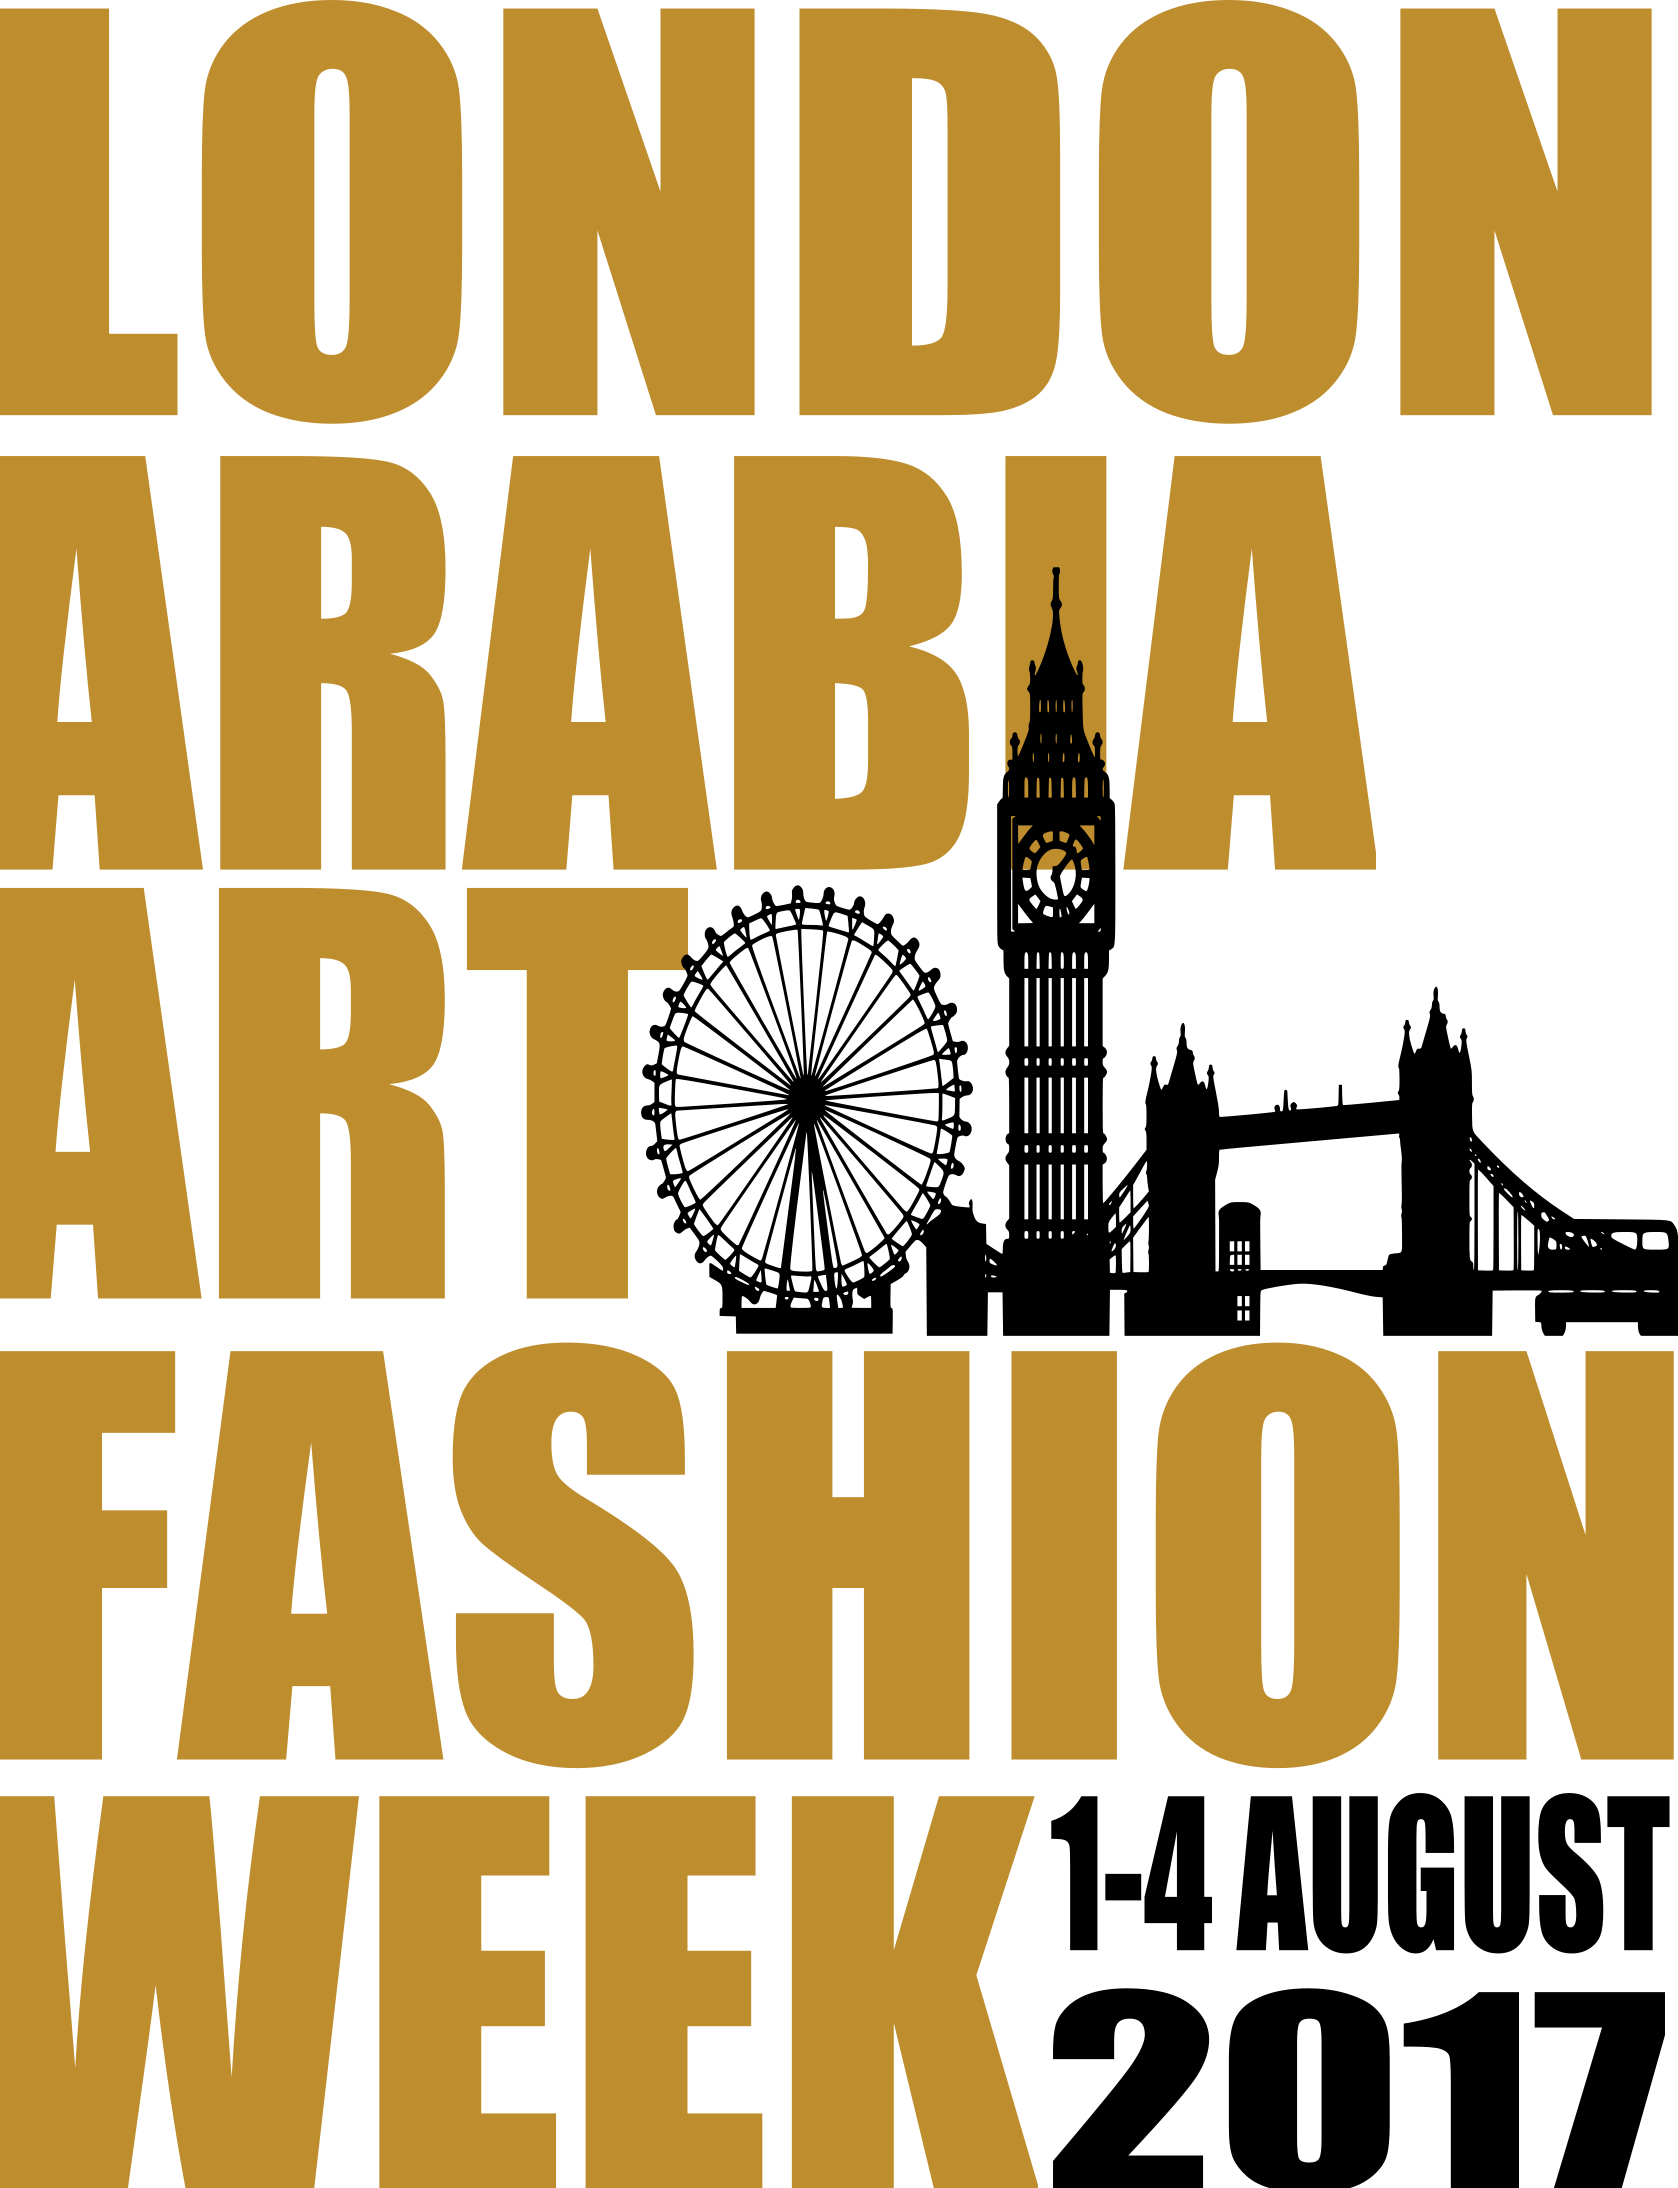 http://www.londonarabia.co.uk/  This August 1-4 we are organising London Arabia Fashion Week The 2nd annual, 3-4 days culture, Fashion, Art, Design and Film experience, in partnership with, The Arab British Culture & Business Association, London & Partners, Regents University London and The Jumeirah Carlton Tower Hotel, The inspiration for creating LAFW is simple; bring the creative collective that is the Arab artists and designers have then connect their talents with London to produce an event that is themed, multi-faceted, which will in turn help to boast London's tourism, shopping and creative economy. Also, to highlights and enhances the visibility of London links with the Arab World to established and emerging talent in the Fashion, Art, Design and Film industries. London Arabia Fashion Week connects London with  the Arabic arts and culture sectors by bridging local firms to the community of artists, musicians, designers, and film industry.